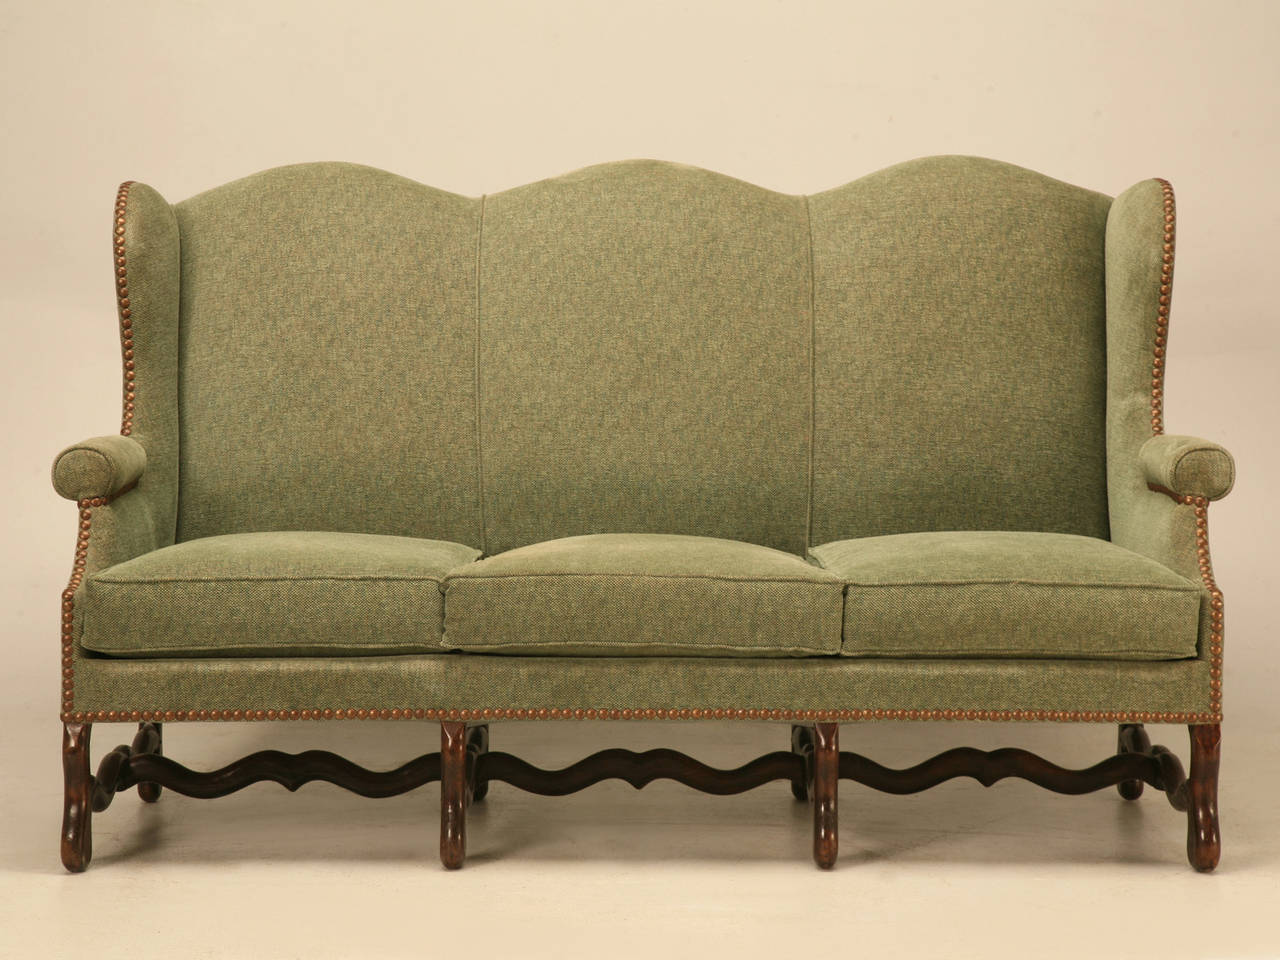 Vintage French Os De Mouton Style Small Sofa or Settee In Fair Condition For Sale In Chicago, IL